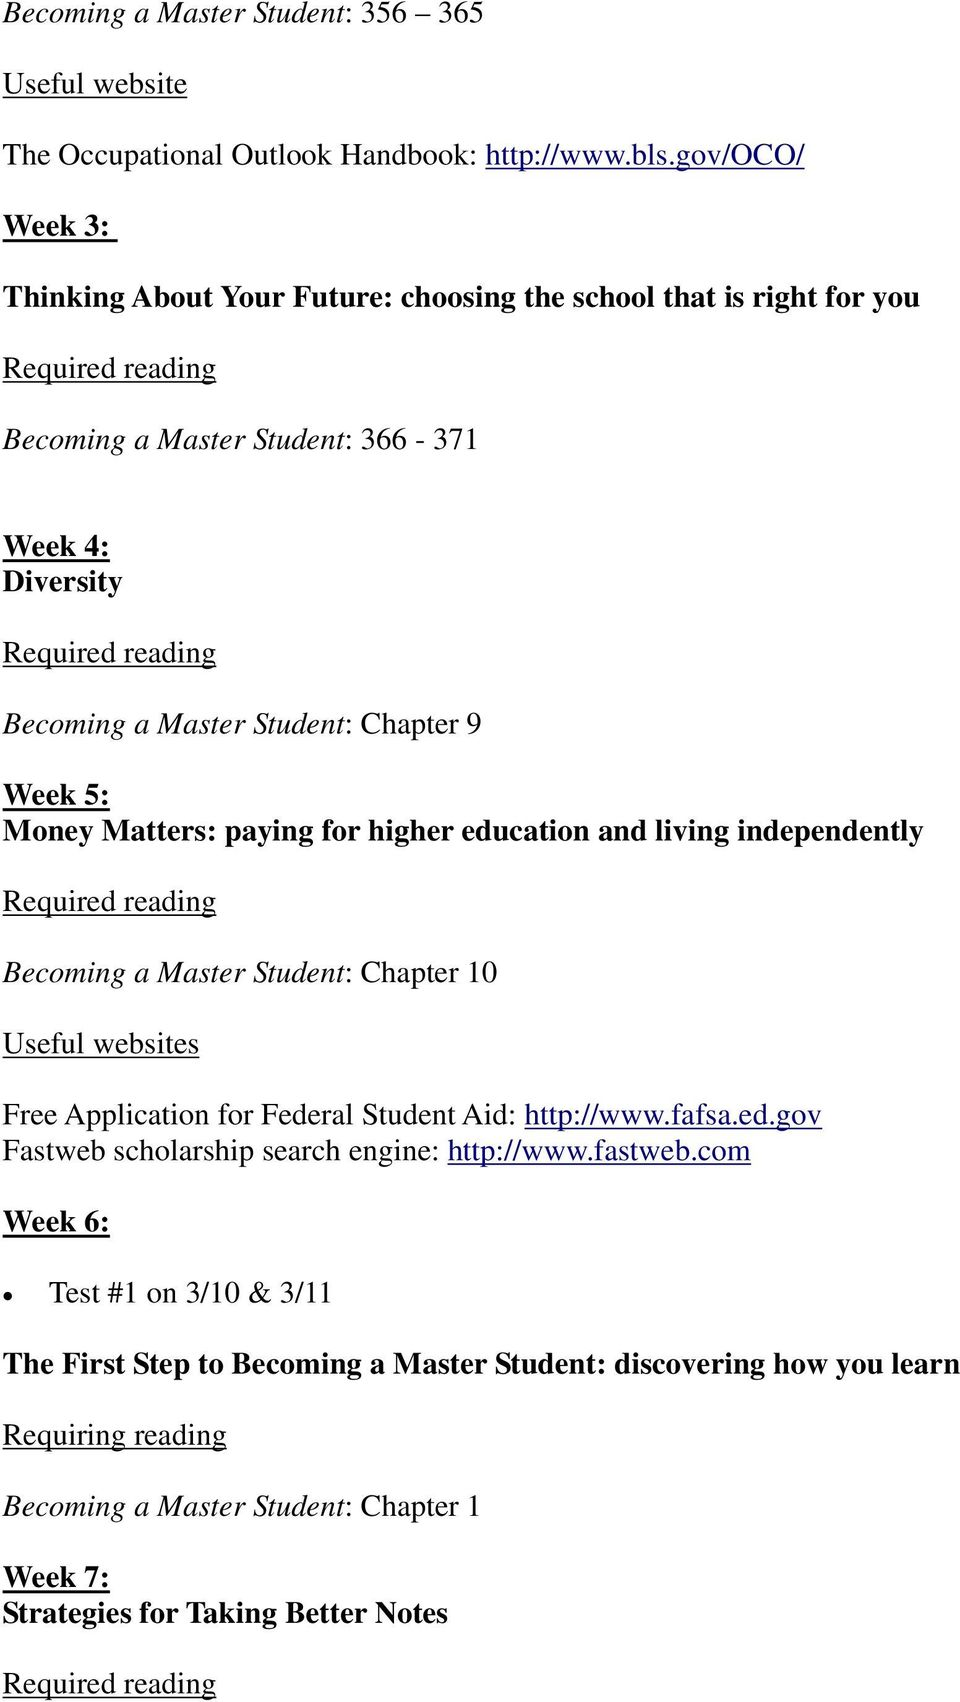 5: Money Matters: paying for higher education and living independently Becoming a Master Student: Chapter 10 Useful websites Free Application for Federal Student Aid: http://www.